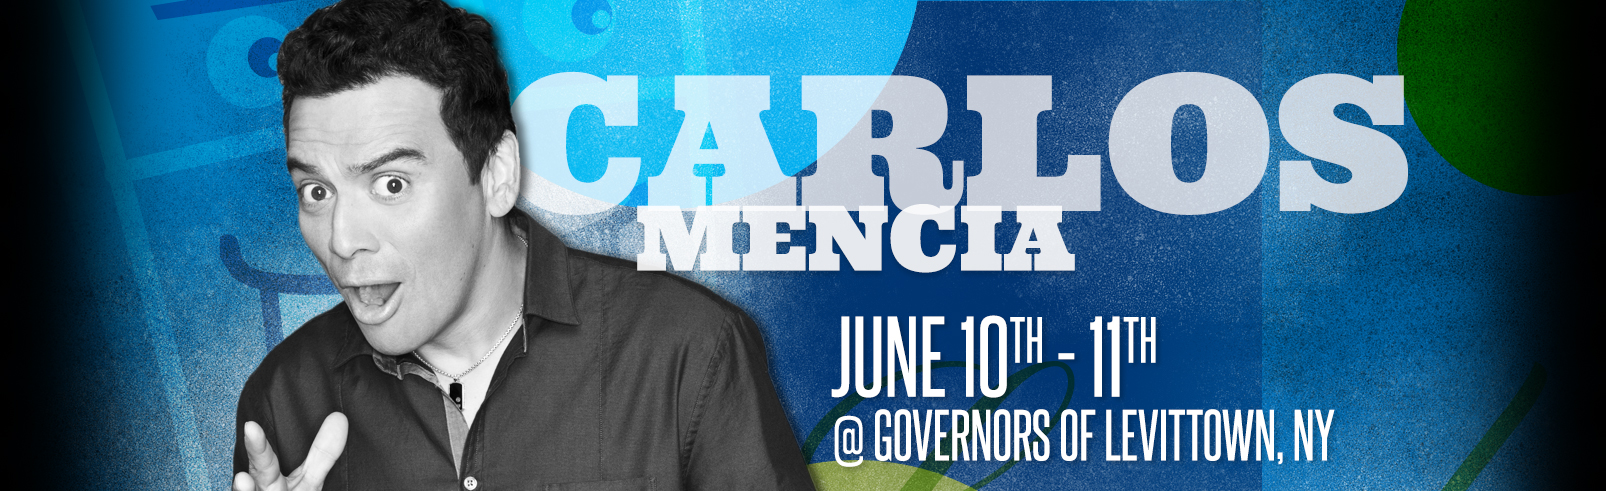 Carlos Mencia @ Governors of Levittown